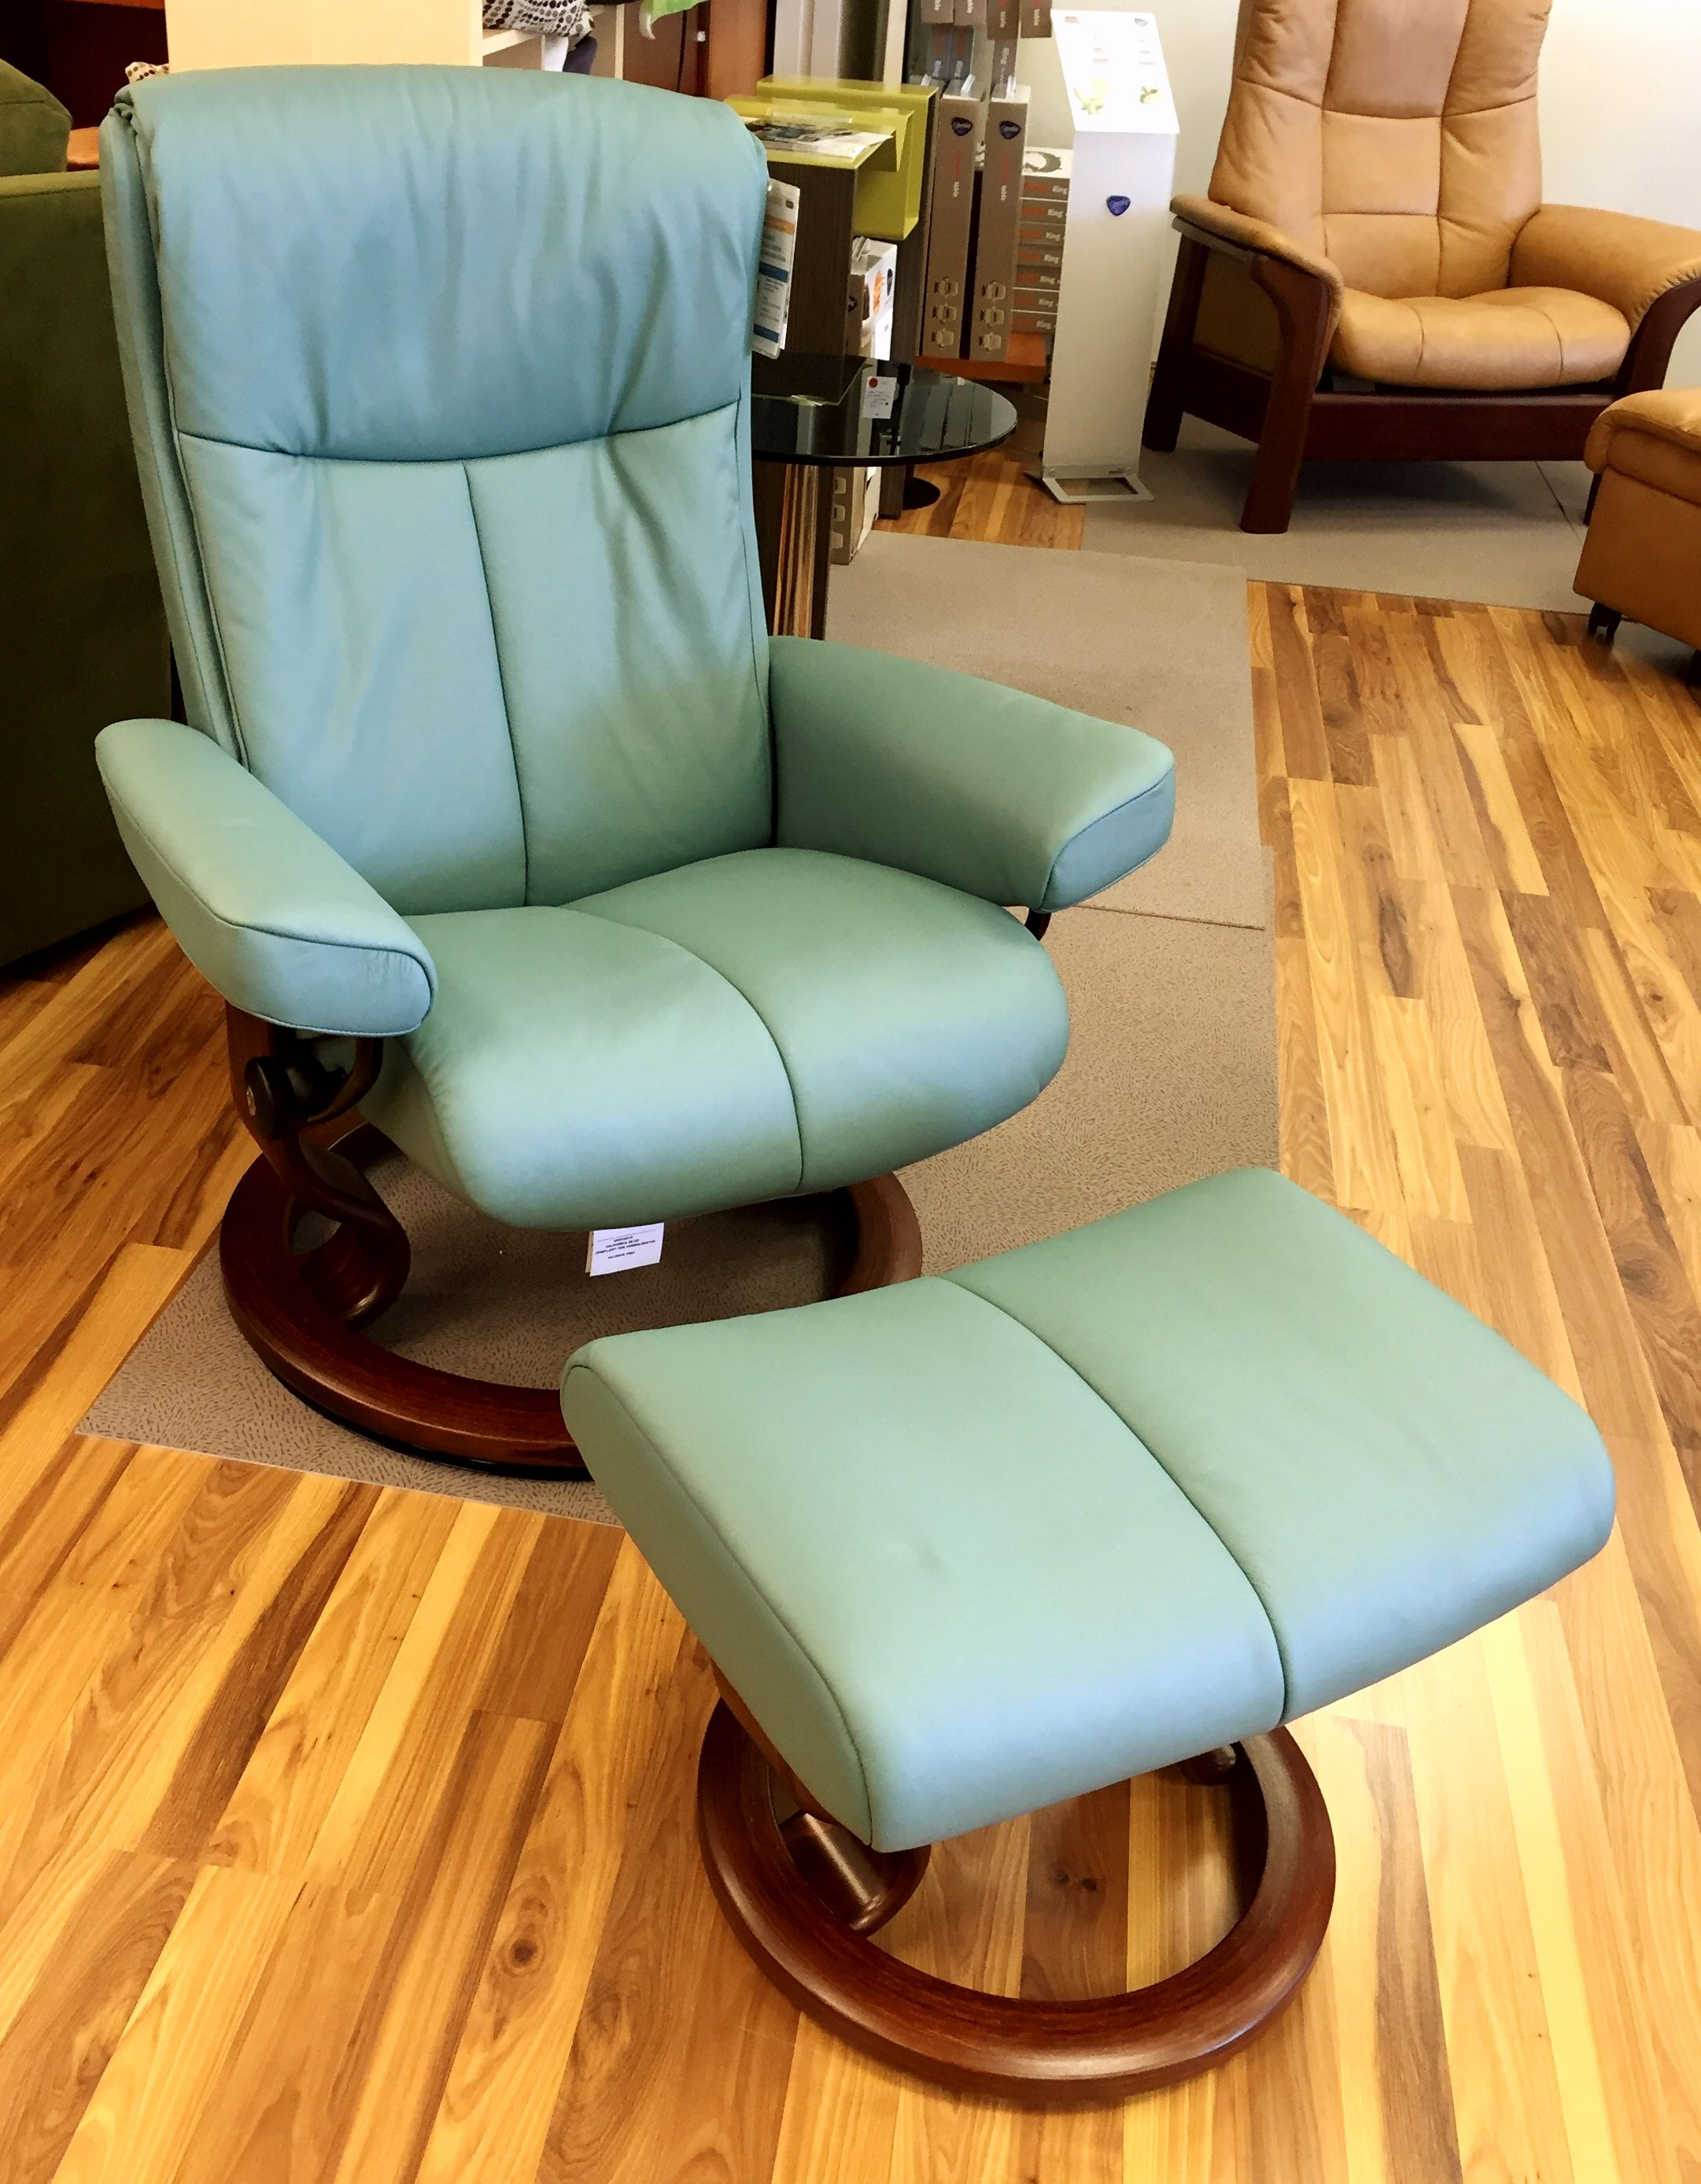 Stressless Sessel Sunrise.html Ekornes Stressless Peace Recliner Ottoman In Paloma Aqua Green